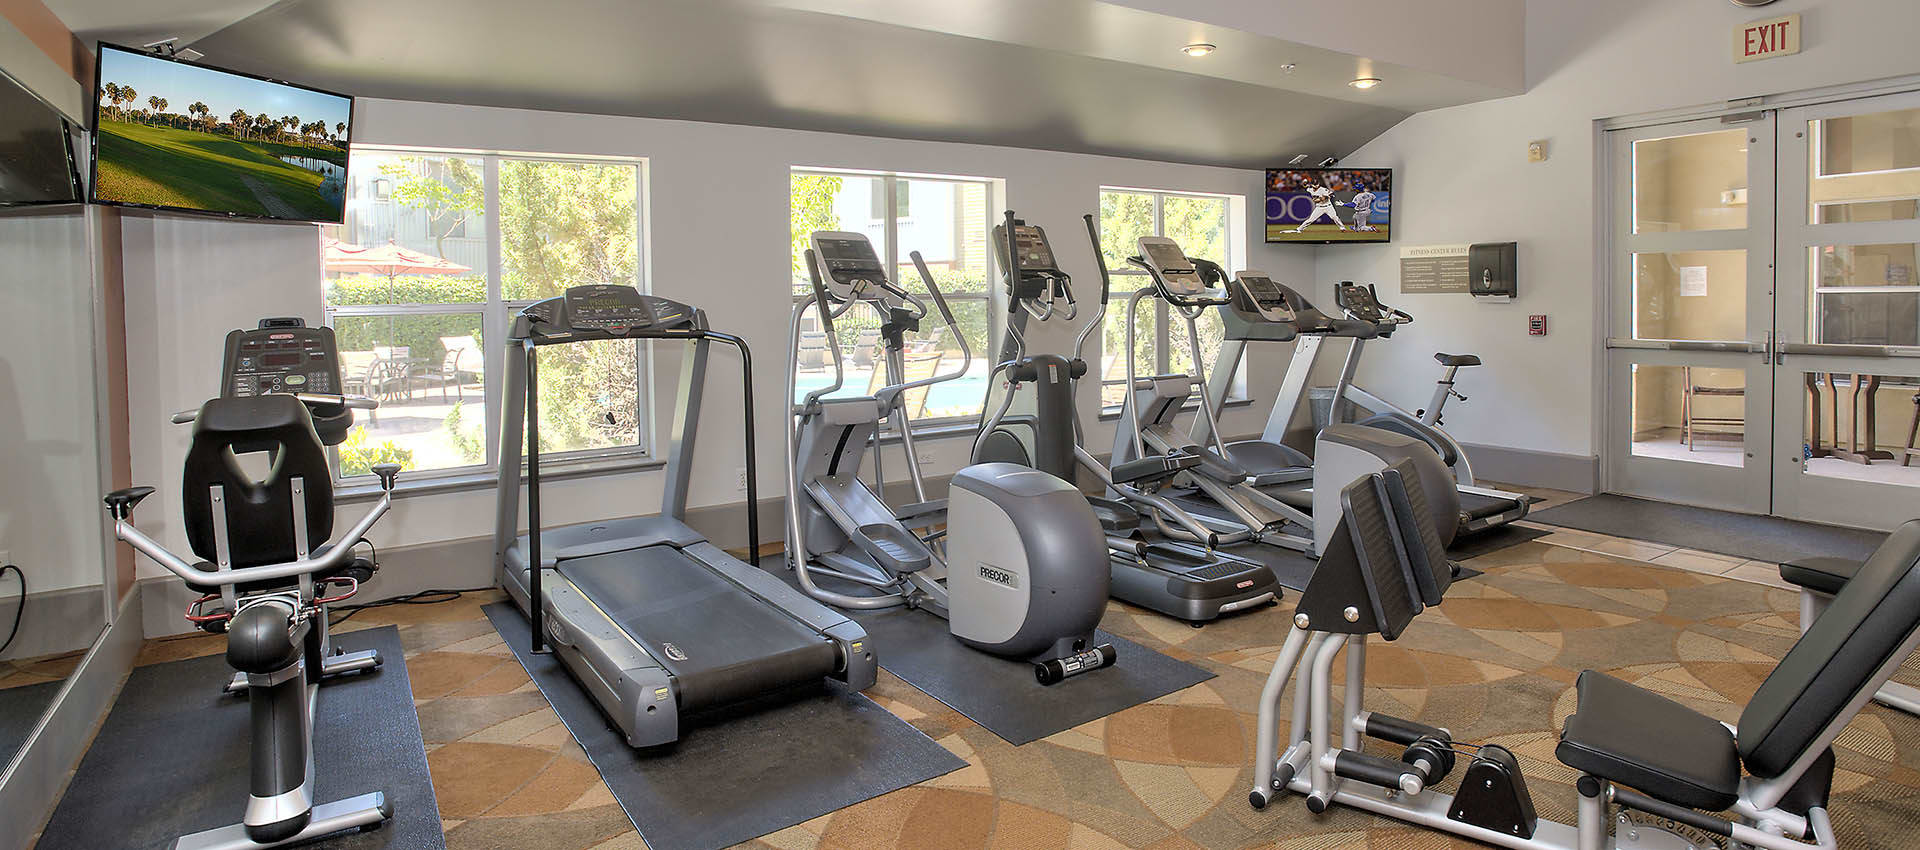 Cardio Equipment In Fitness Center at Azure Apartment Homes in Petaluma, CA